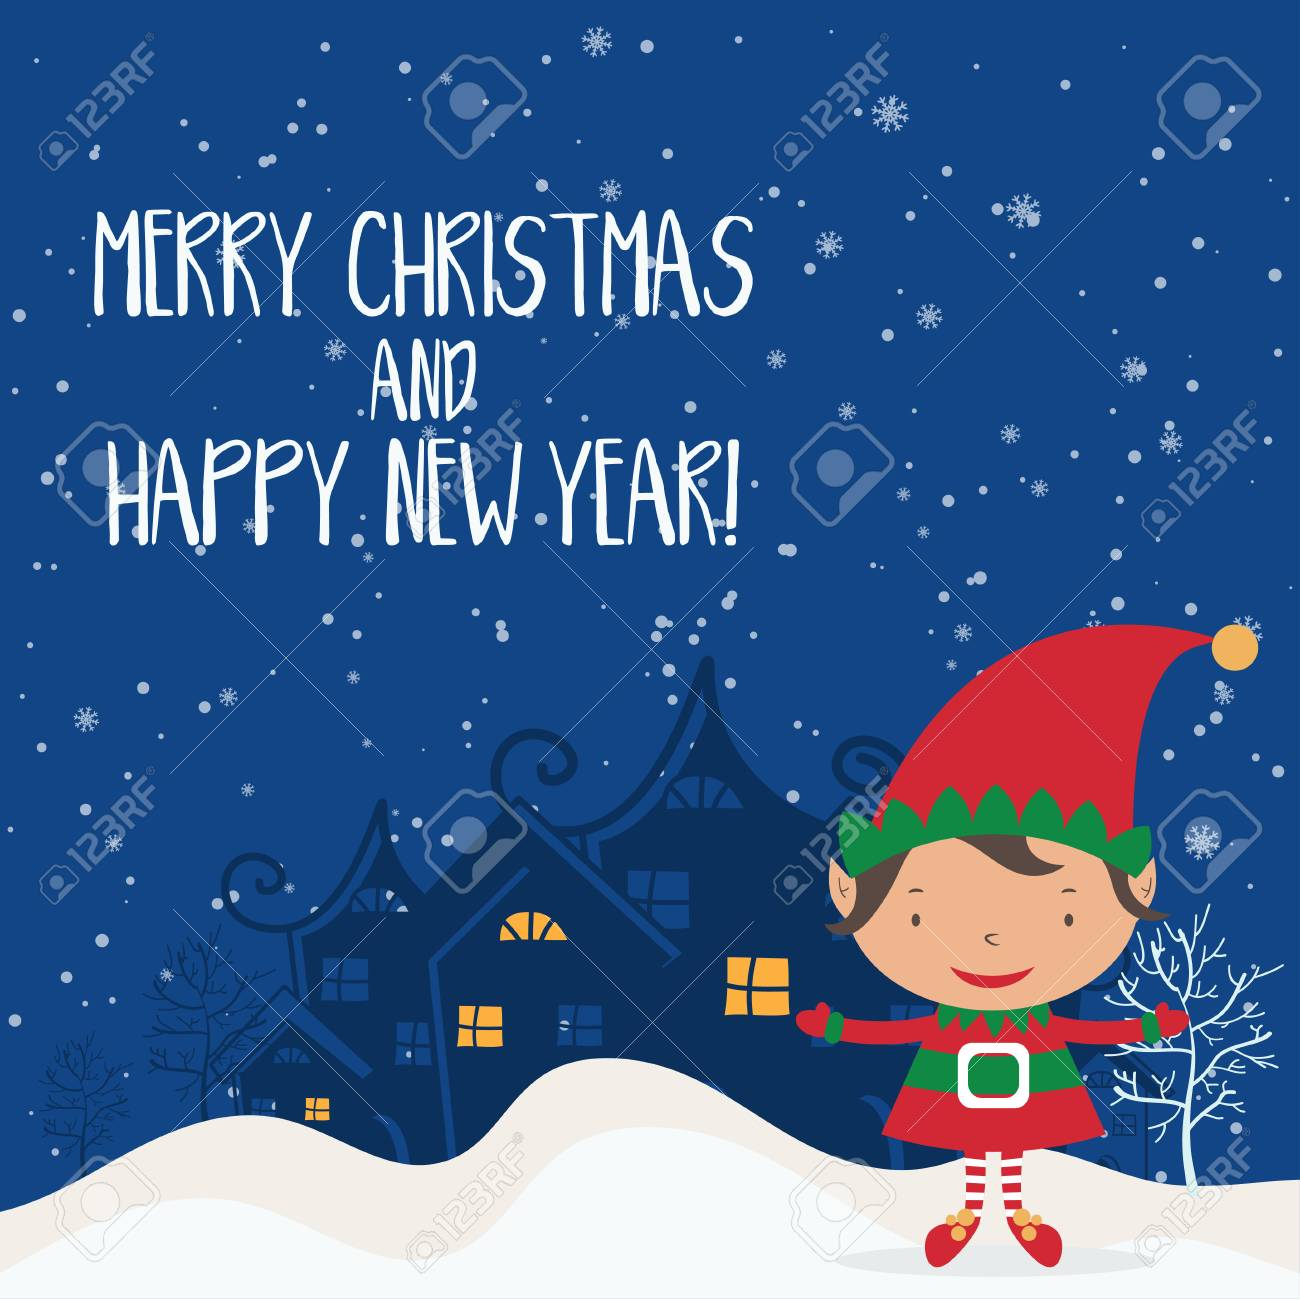 Cartoon illustration for holiday theme with elf on winter background cartoon illustration for holiday theme with elf on winter background greeting card for merry christmas m4hsunfo